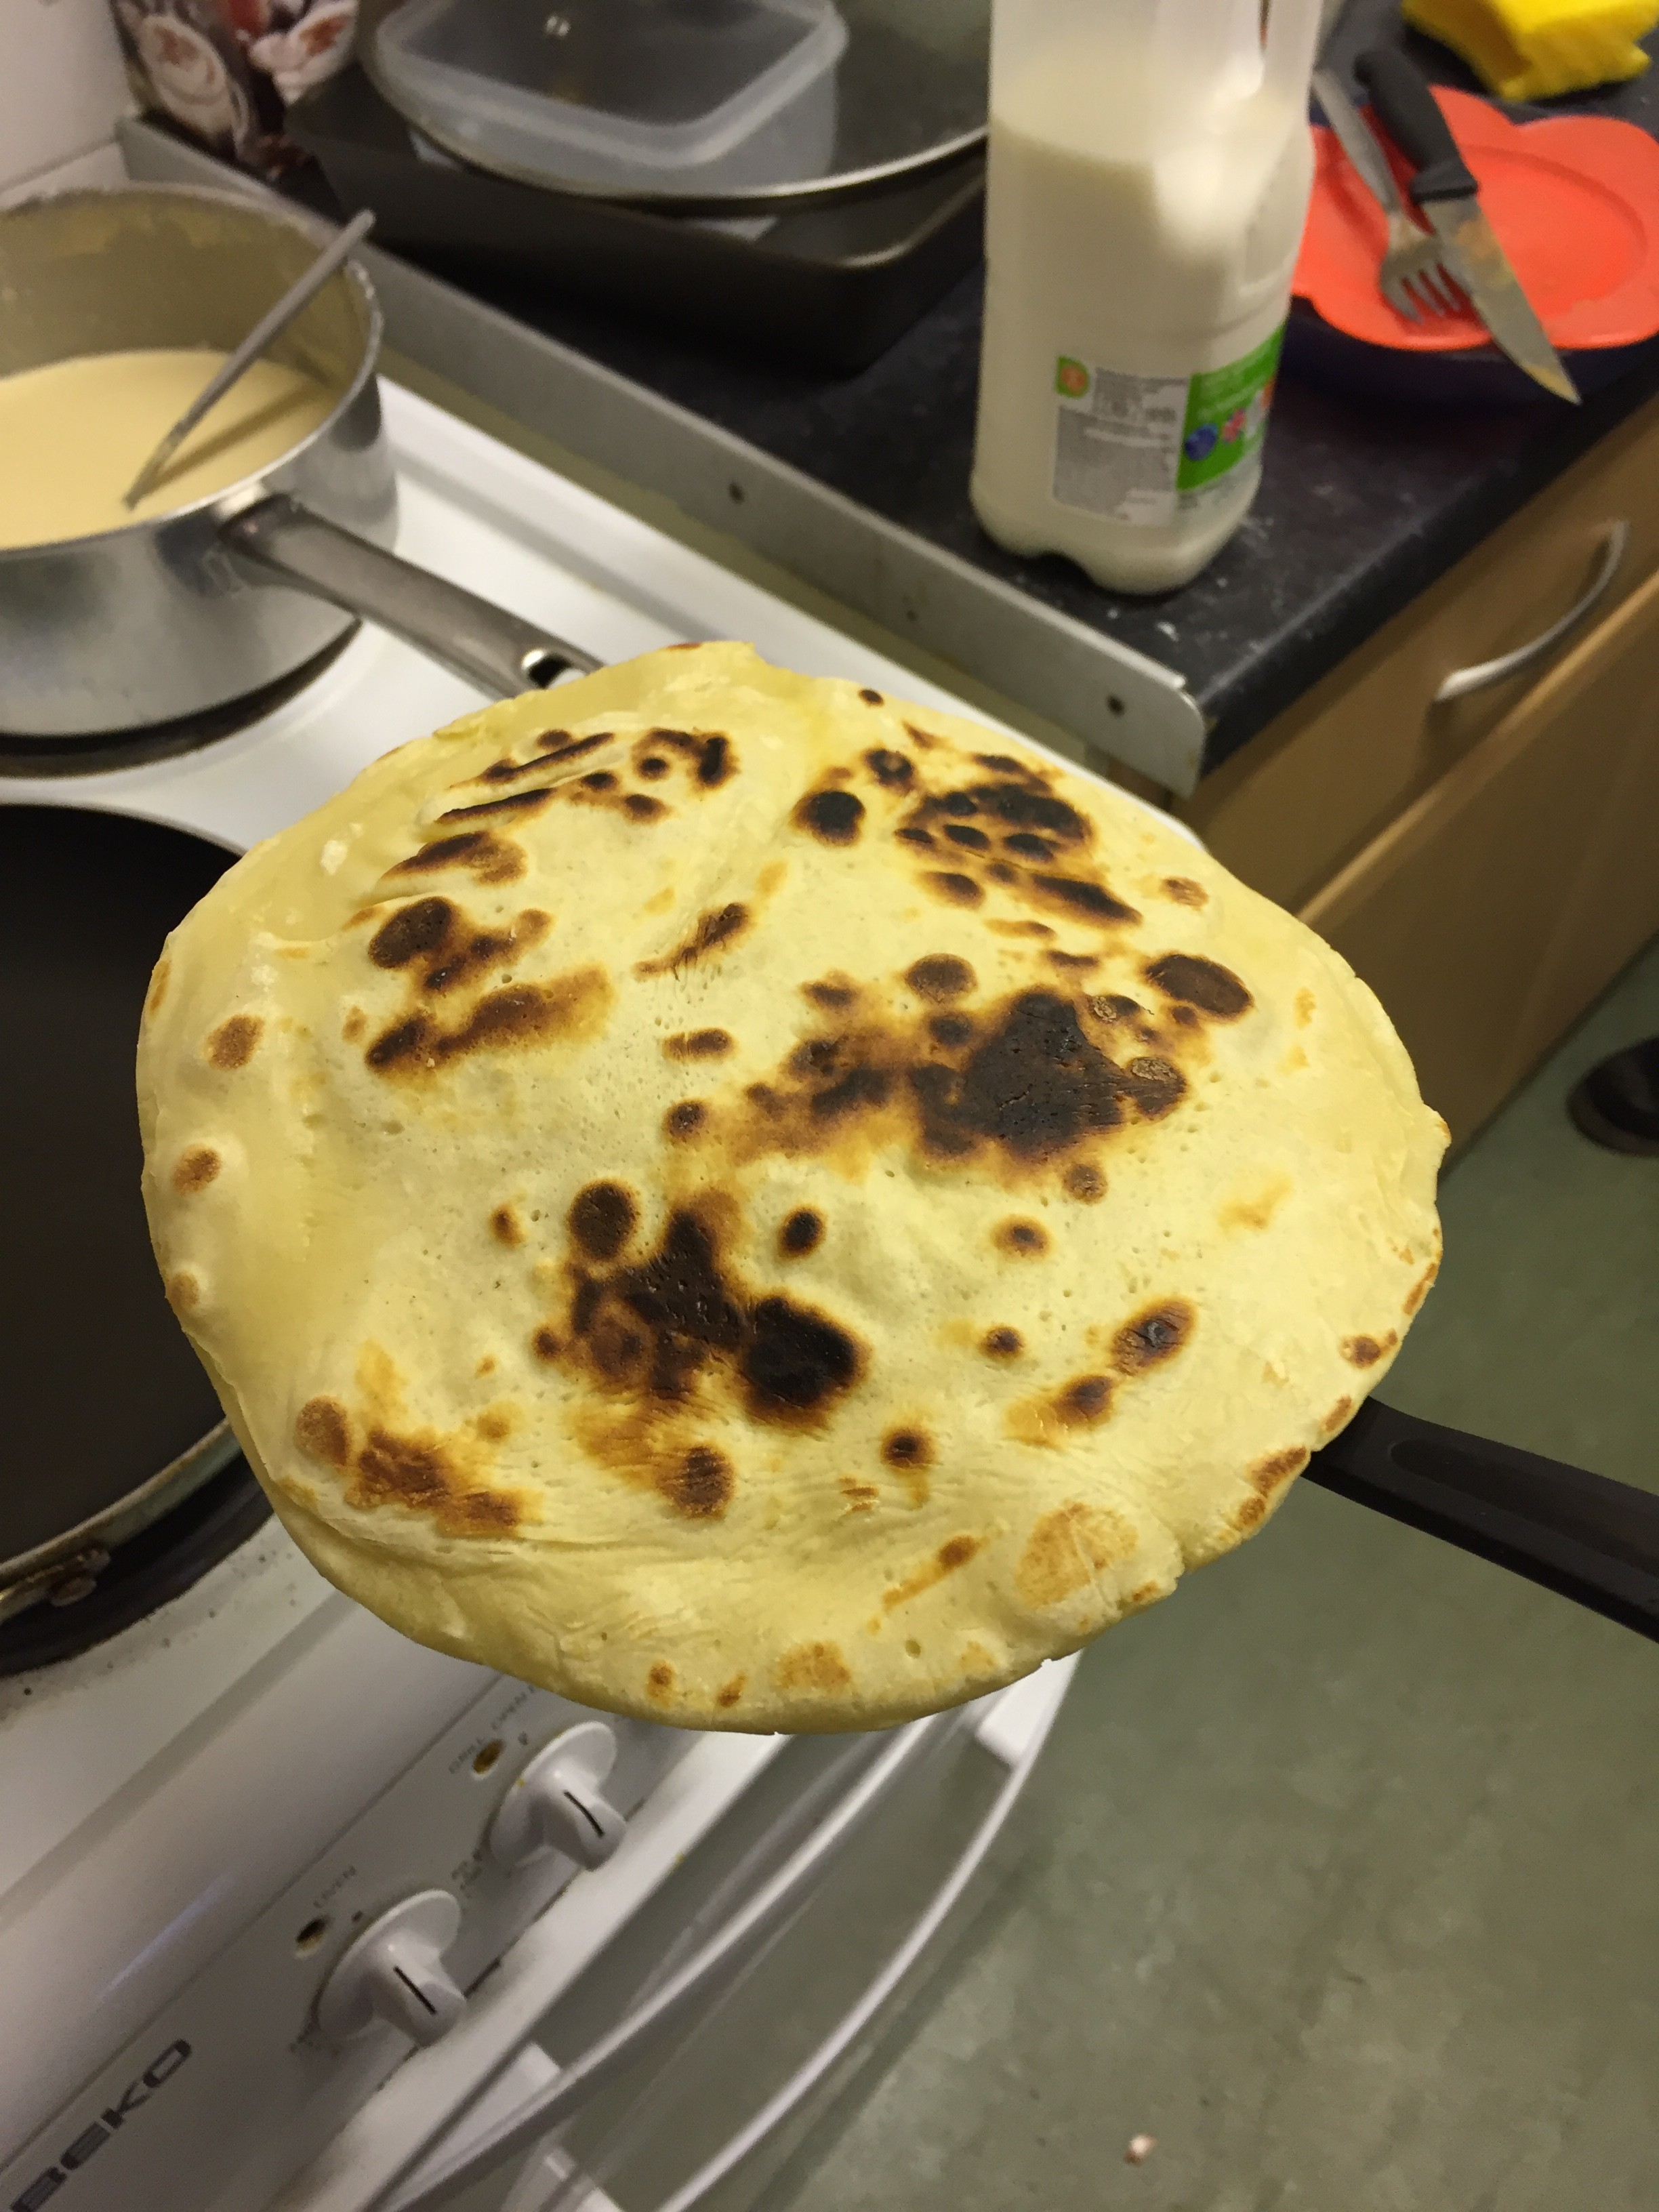 Got any curry to go with that Naan bread?